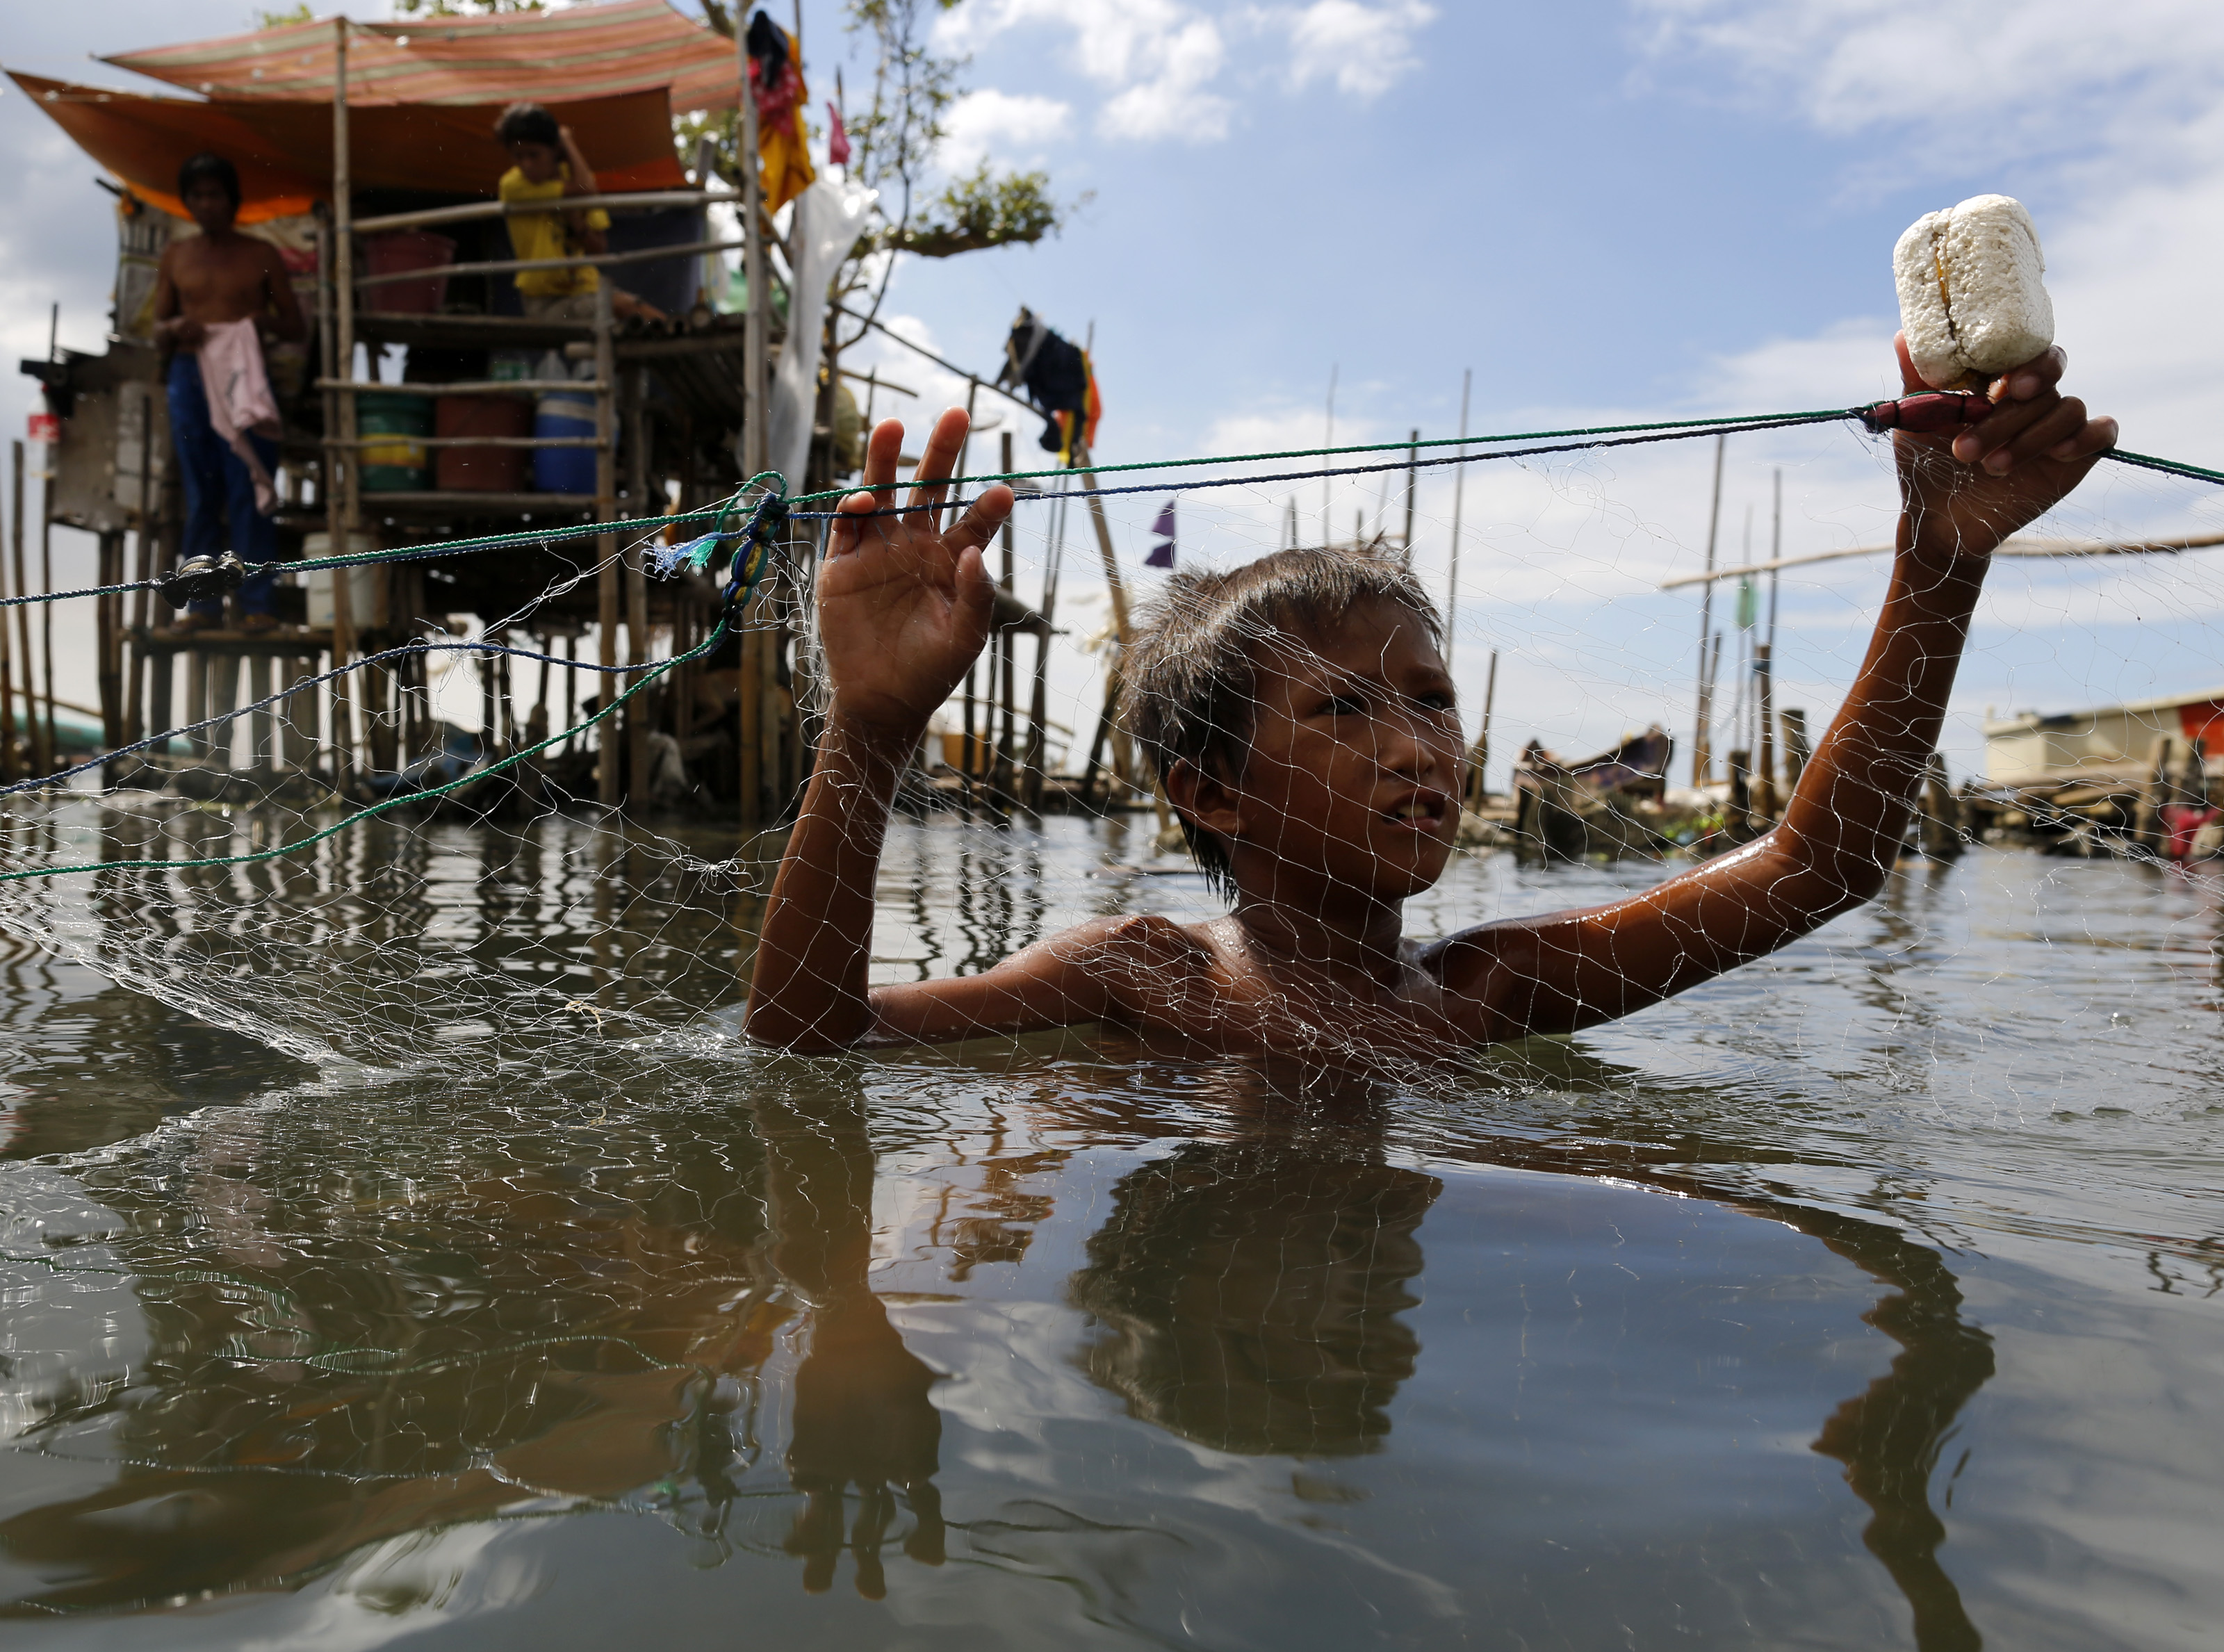 A Filipino boy holds a fishing net at a coastal village in Malabon city, east of Manila, Philippines, 13 December 2015